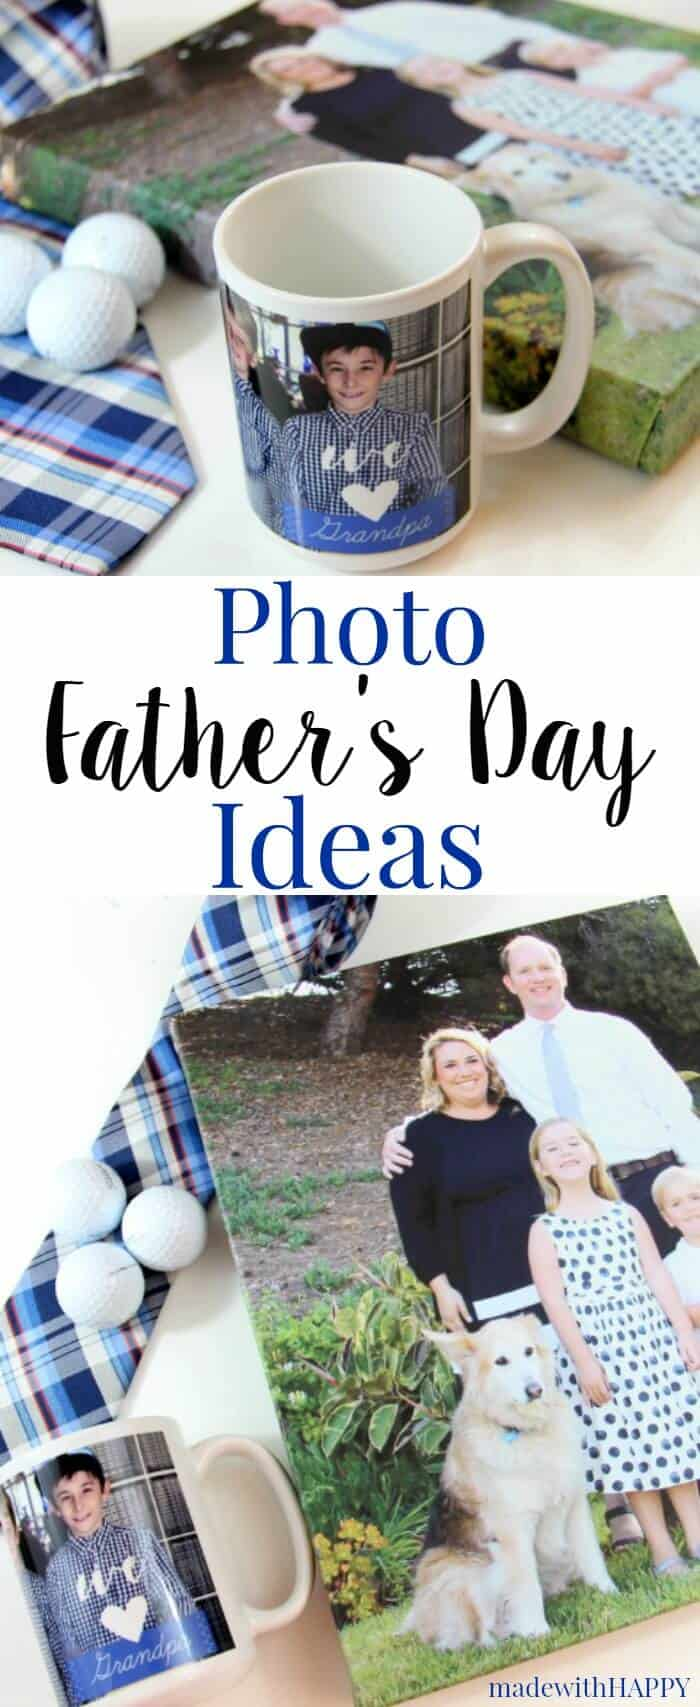 Father's Day Gift Ideas with personalization. Picture Gifts for father's day! | Printed Canvas | www.madewithHAPPY.com #snapfishbloggers #partner